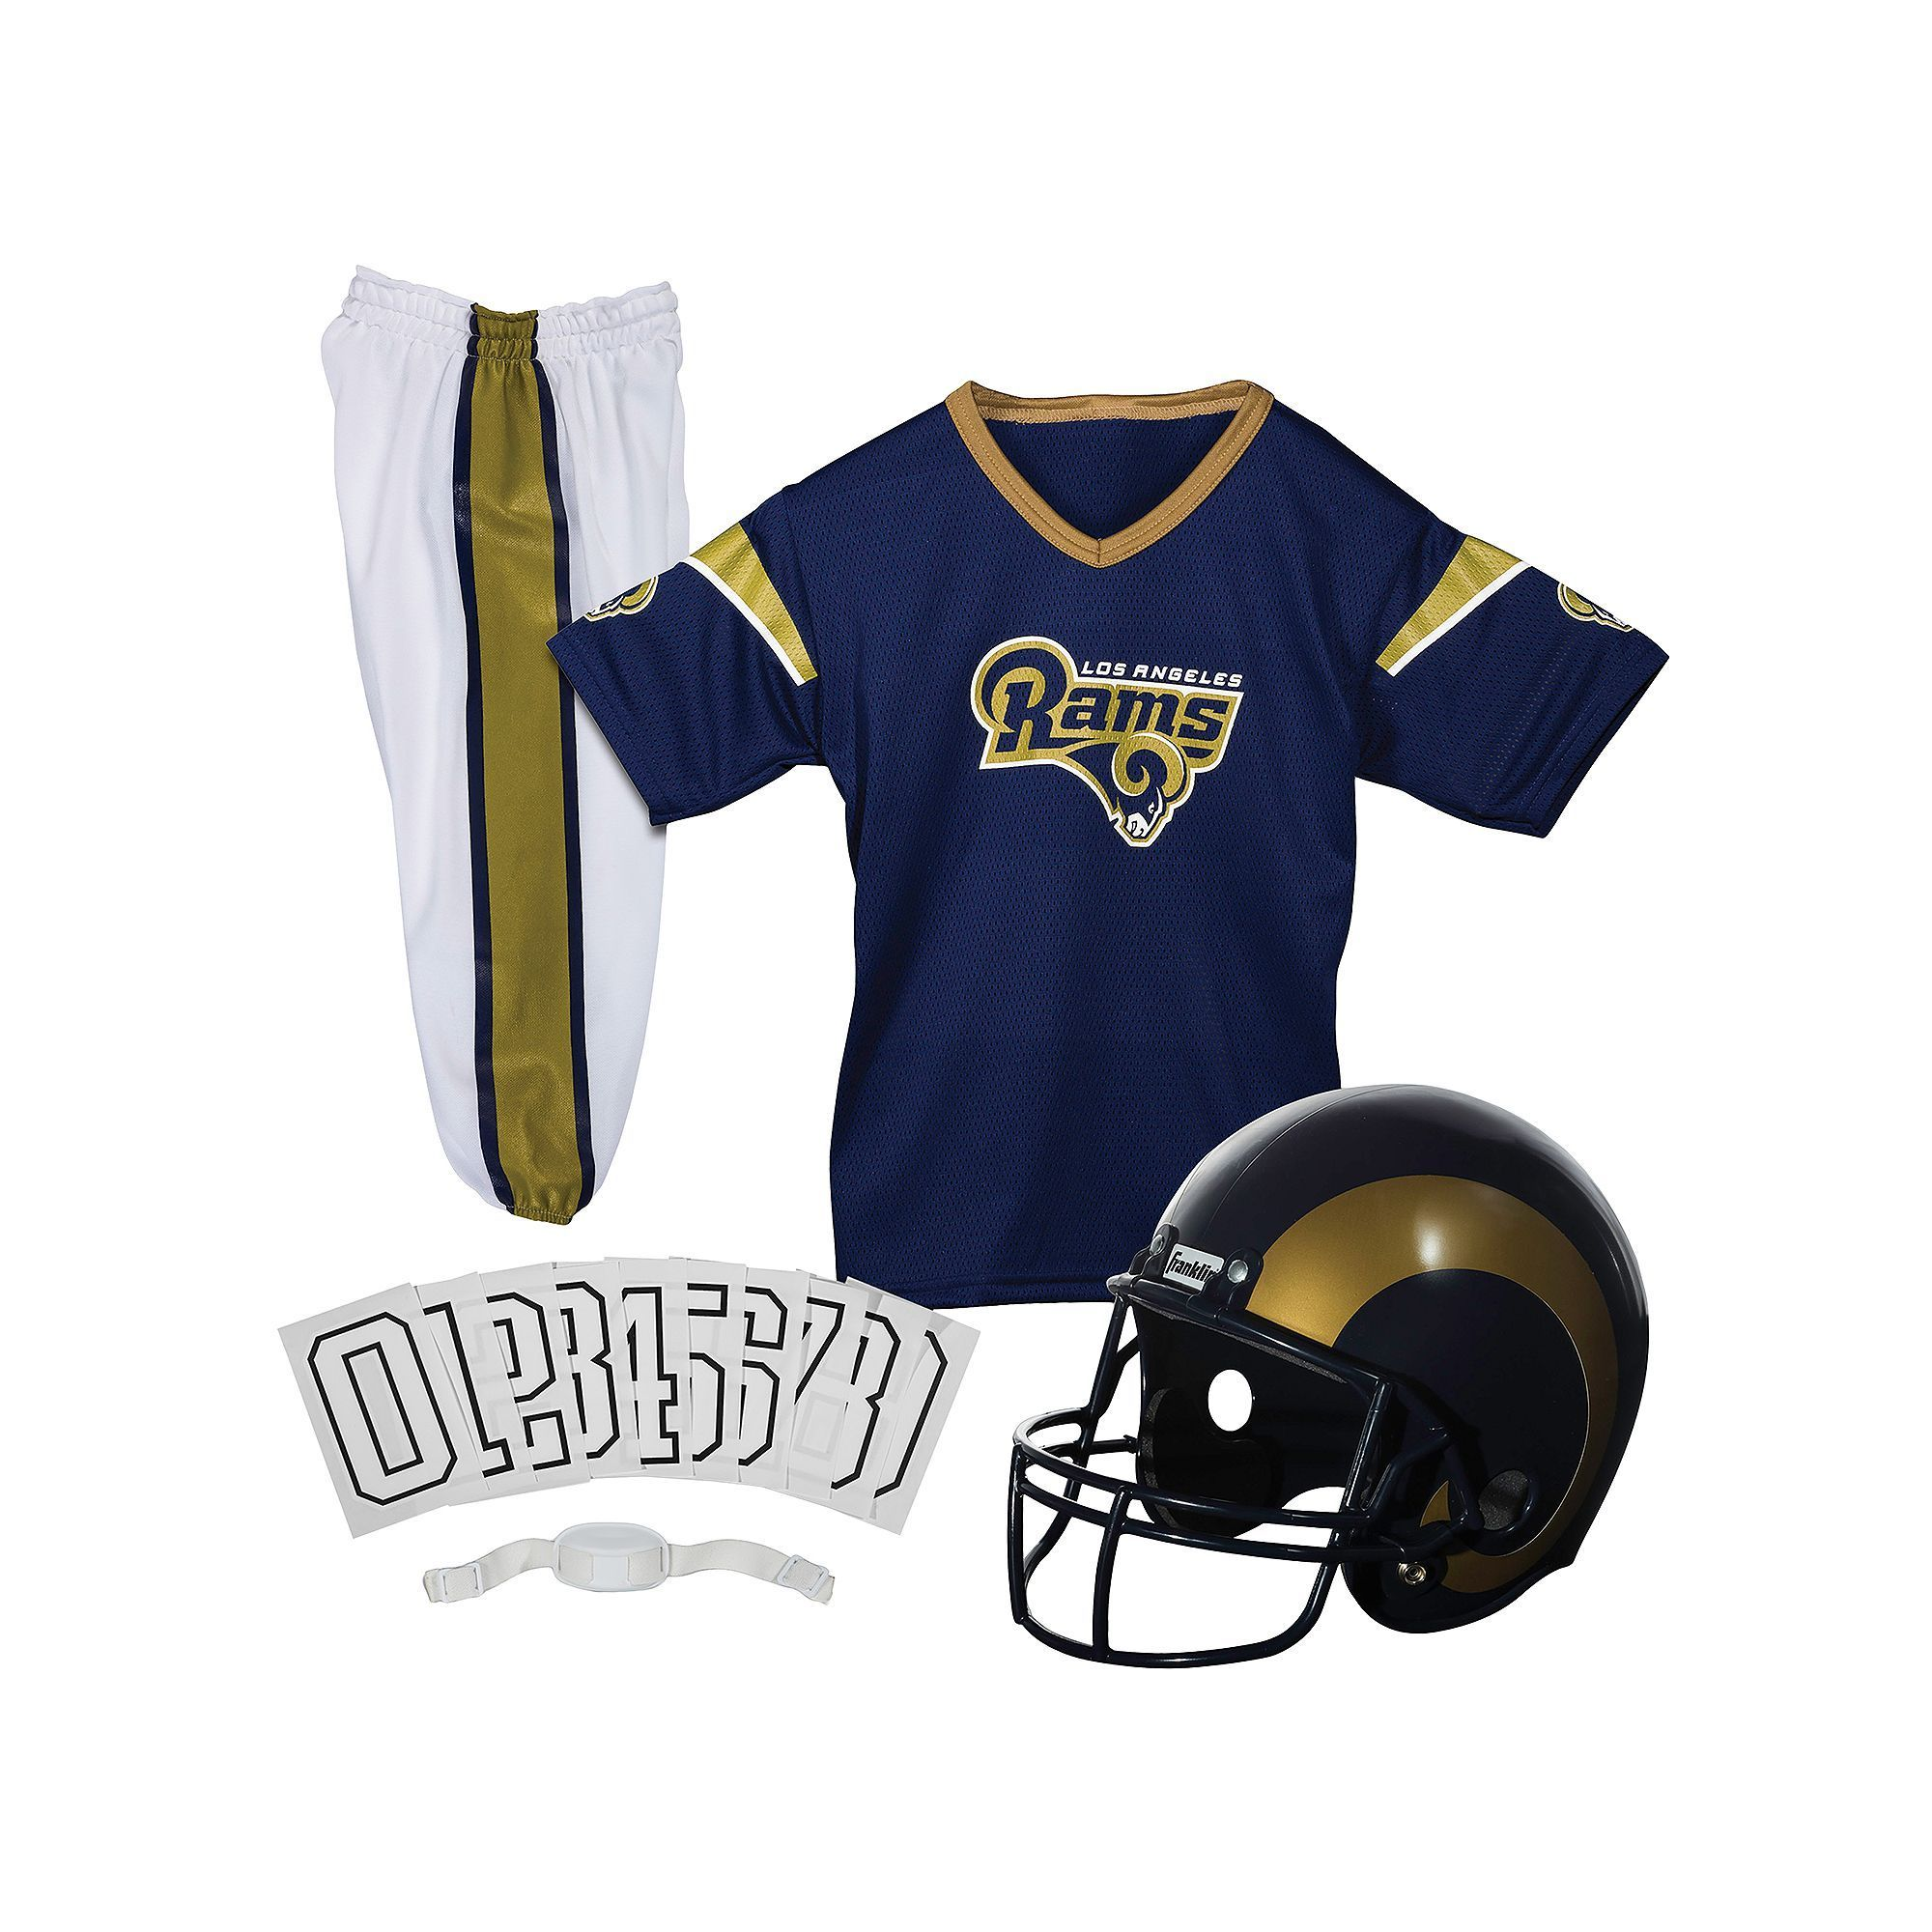 Youth Franklin Los Angeles Rams Football Uniform Set, Kids